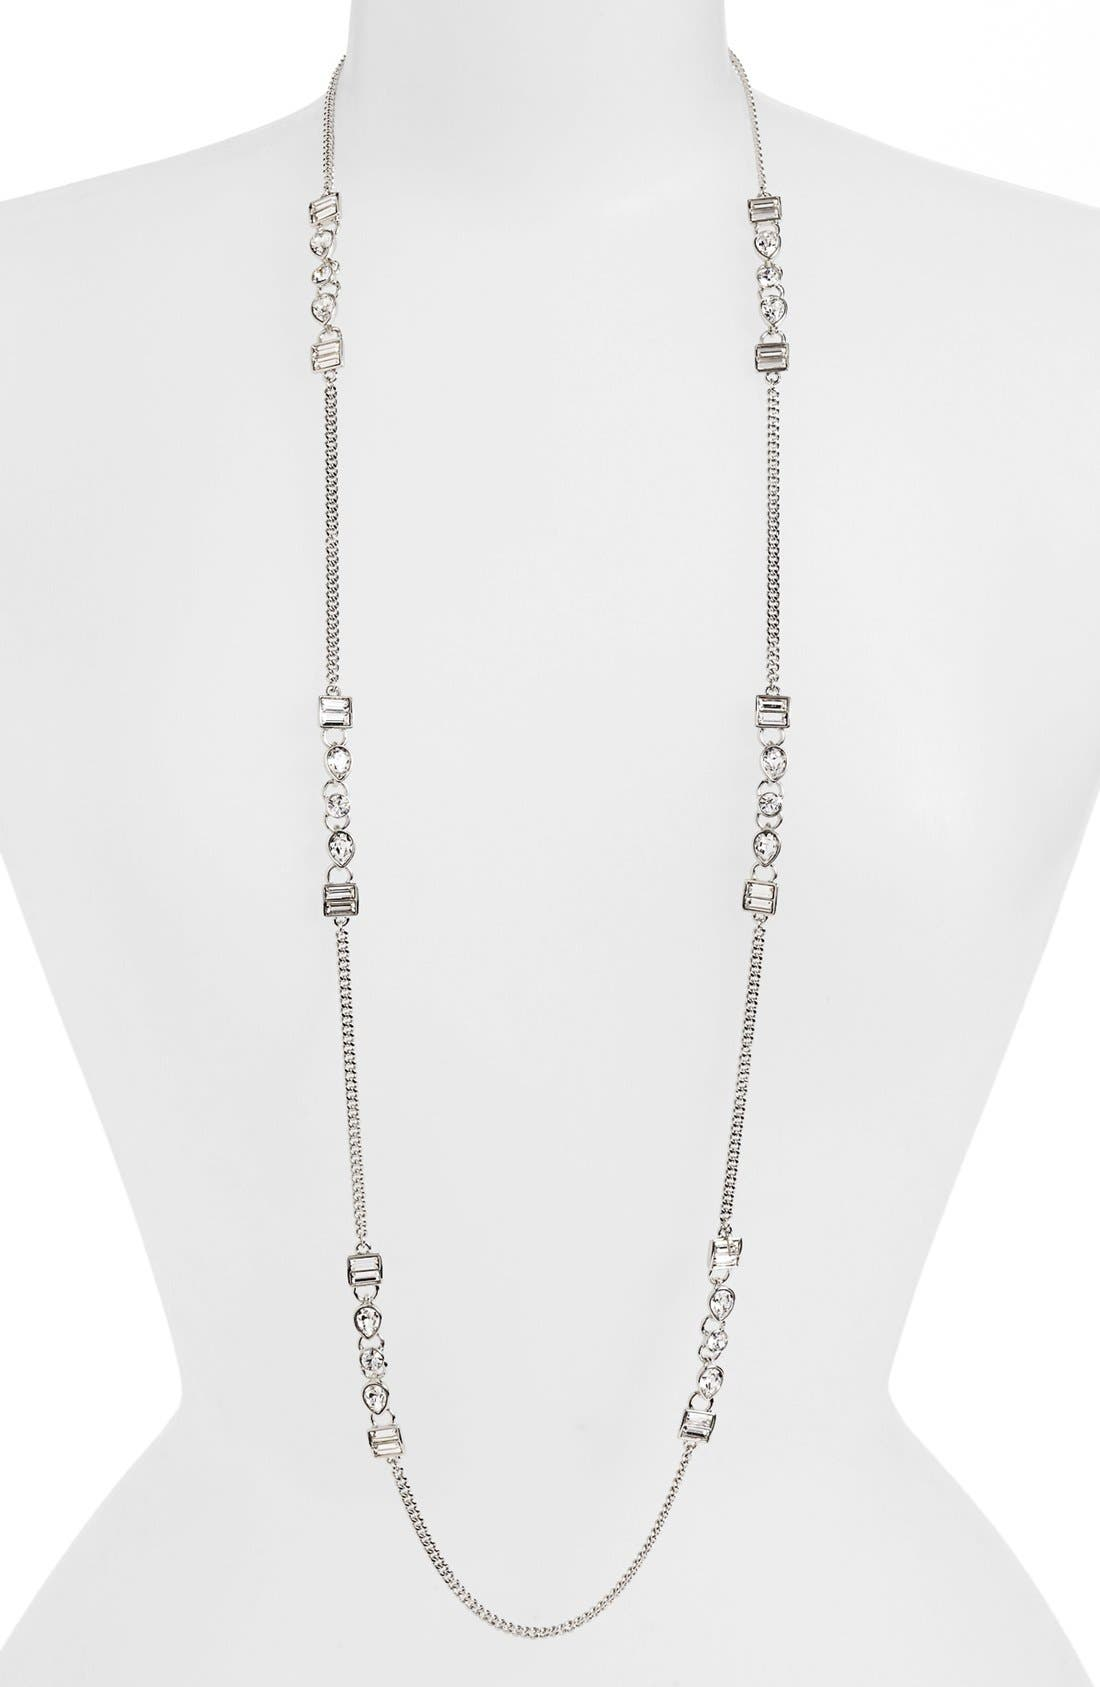 Main Image - Givenchy Crystal Station Necklace (Nordstrom Exclusive)